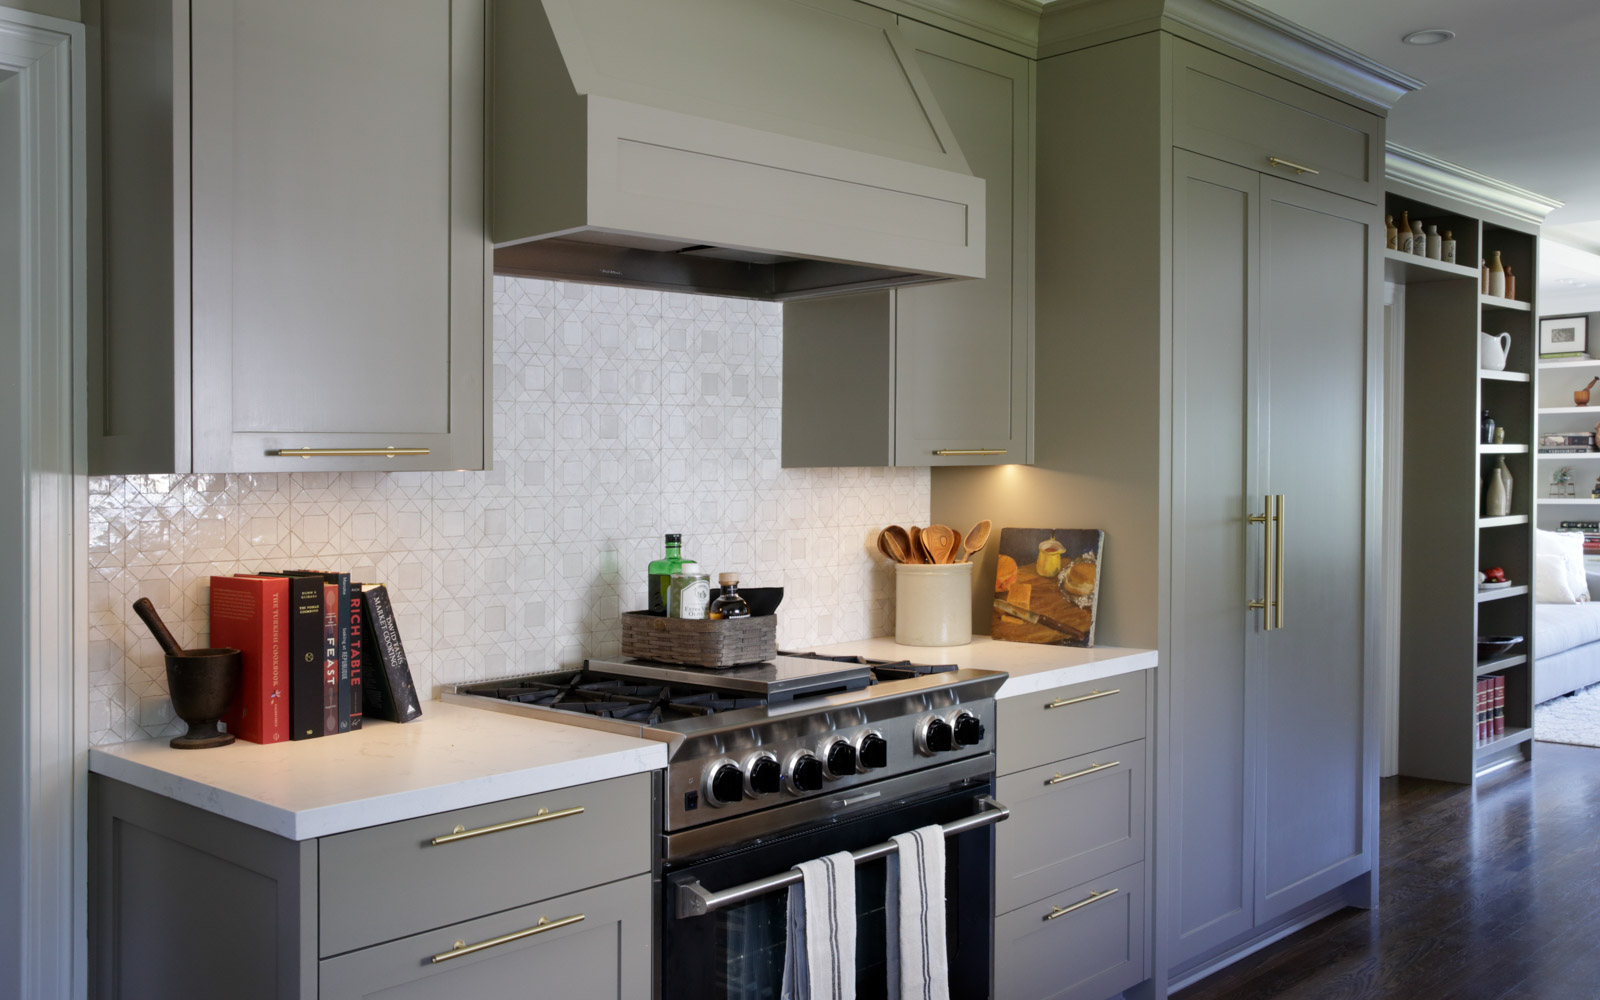 Range with Mosaic House Moroccan tile backsplash, custom painted cabinets, interior design for family in Piedmont